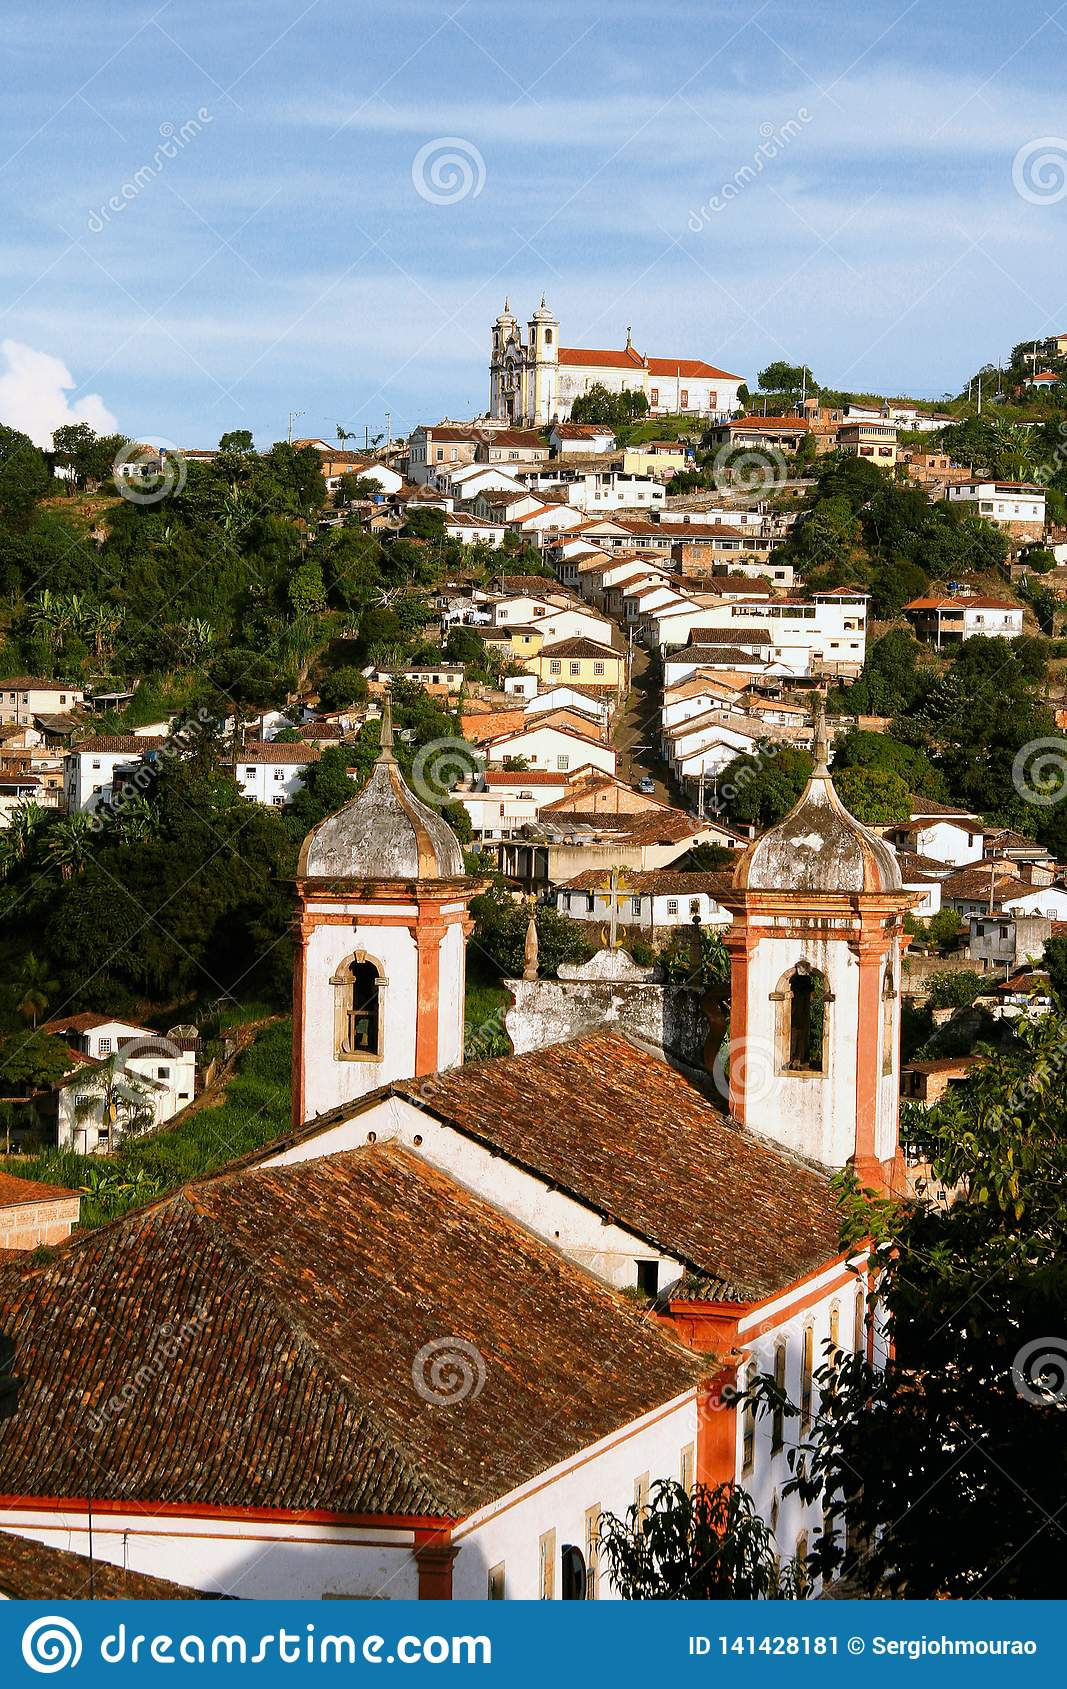 From church to church in Ouro Preto